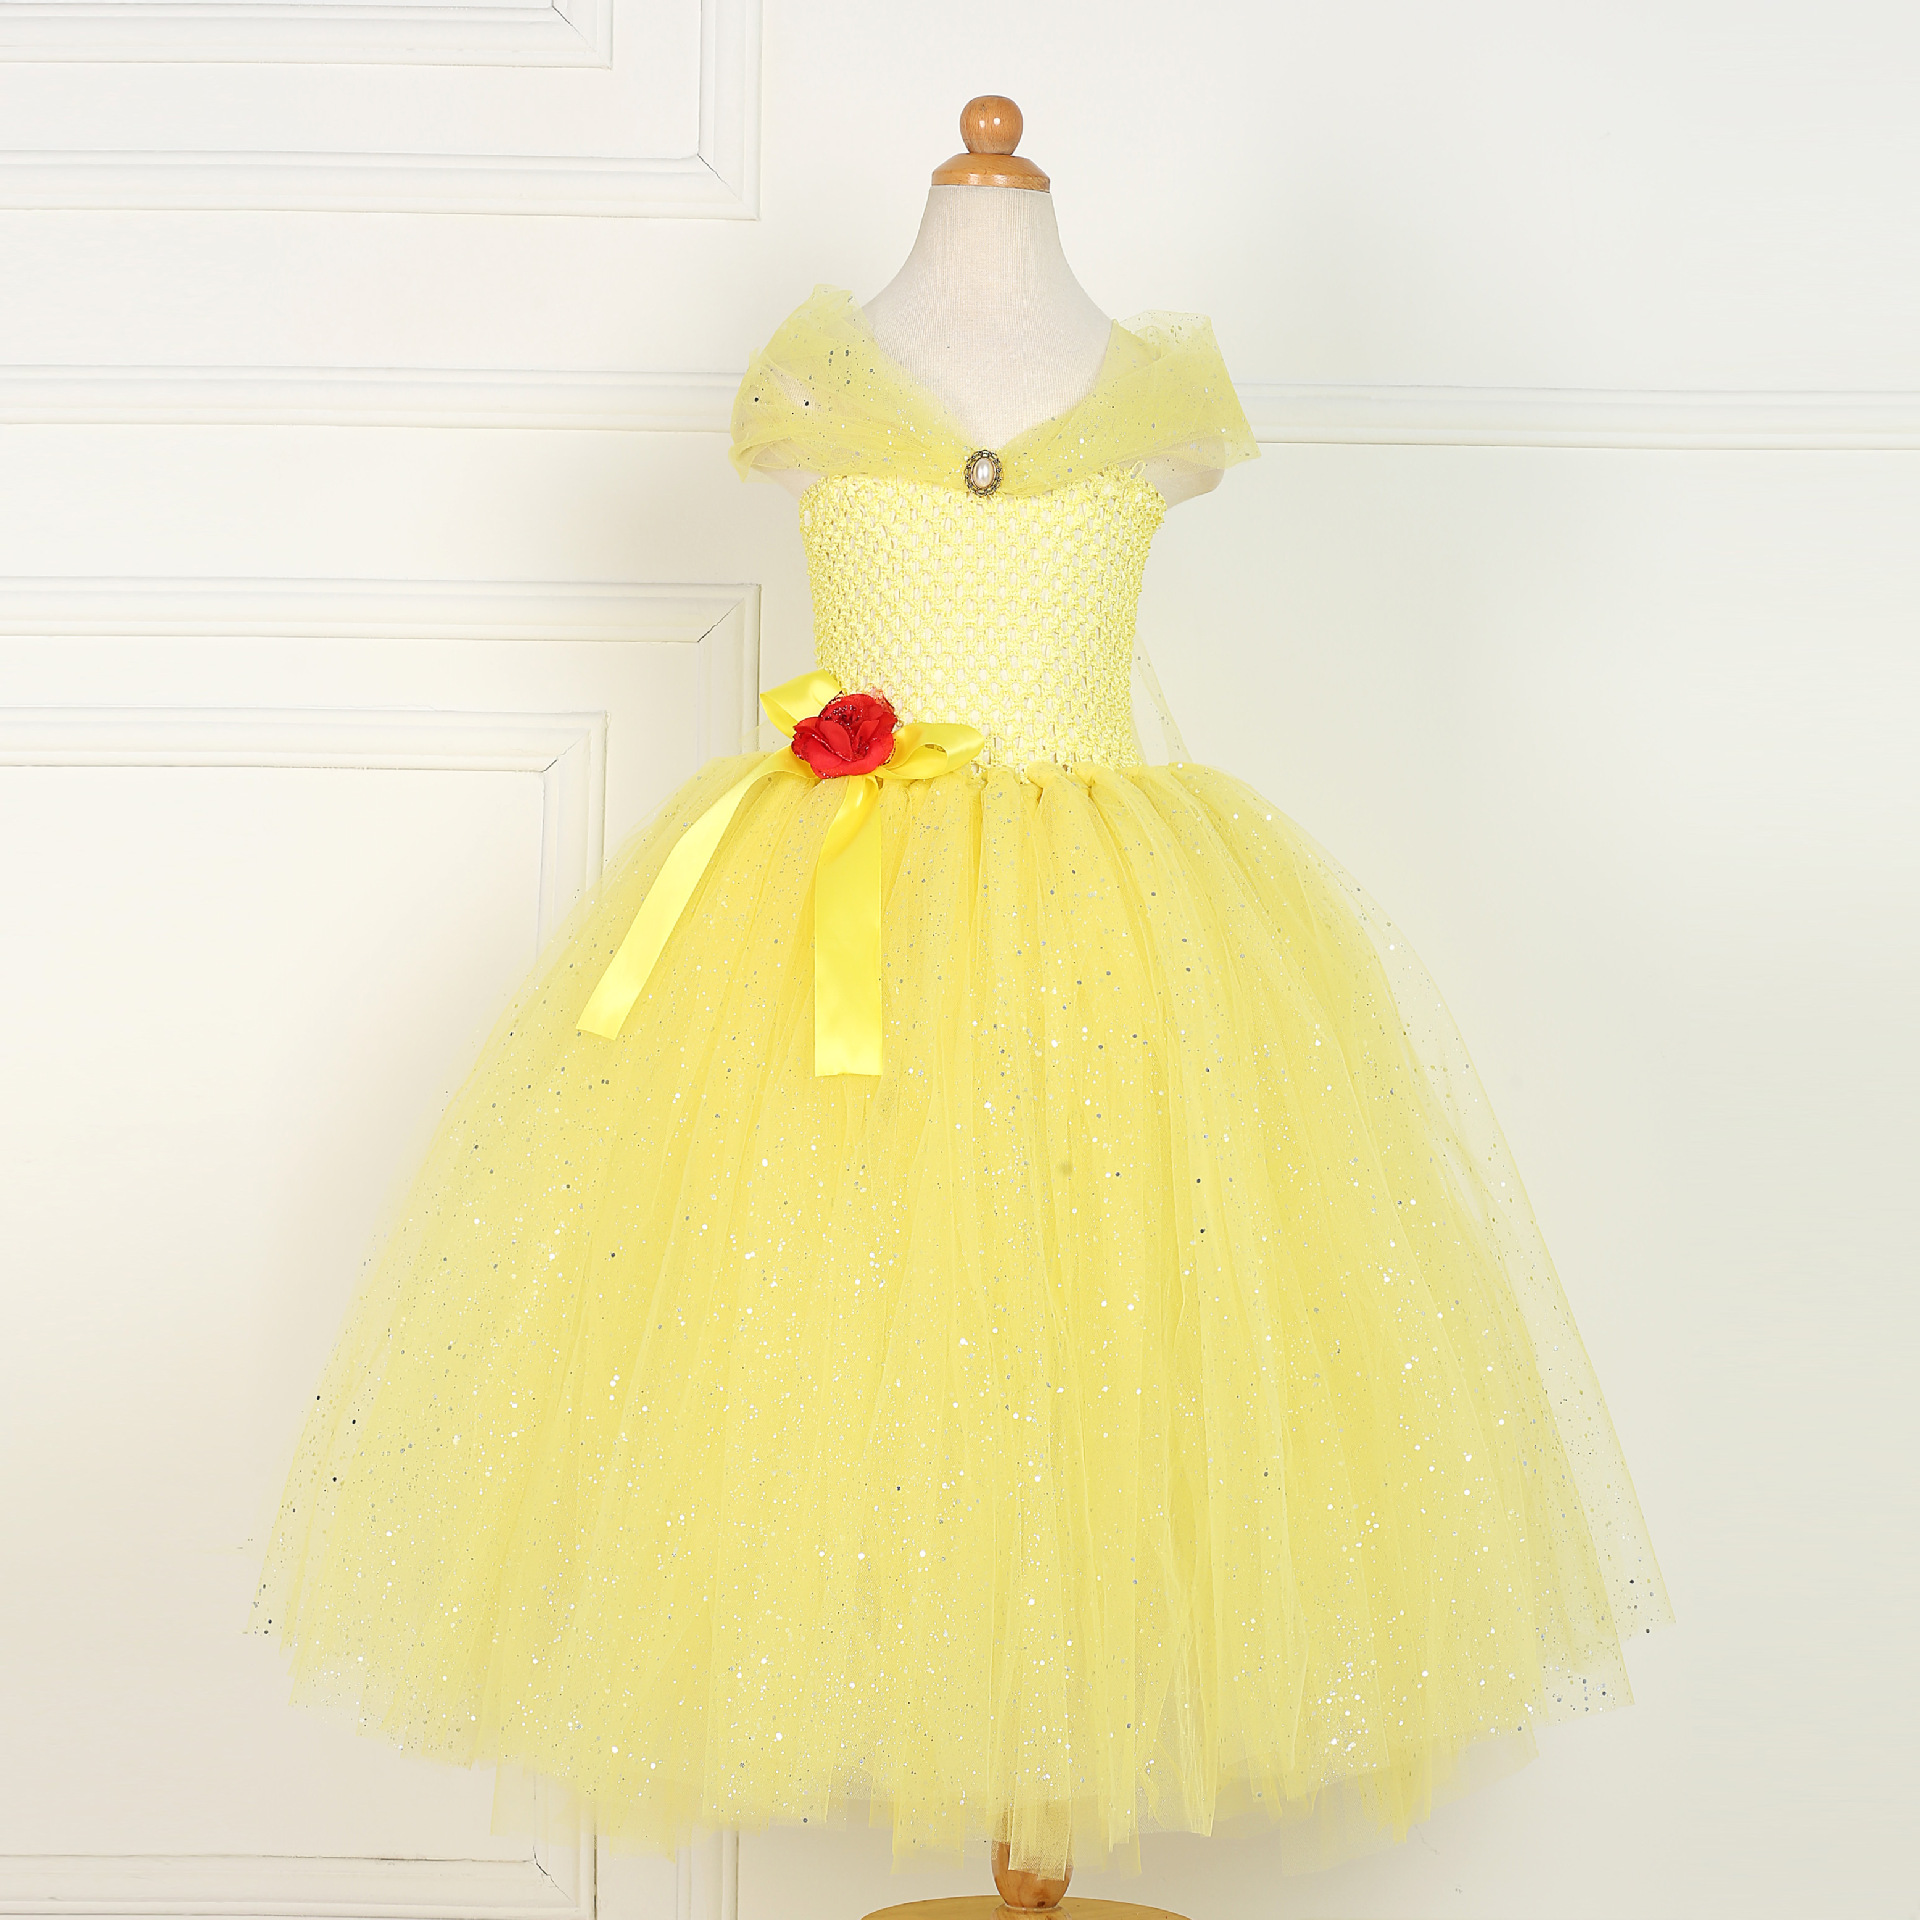 Halloween Costumes for Kids Toddler Girl Outfits Princess Party Tutu Dresses Princess Belle Birthday Flower Baby Pageant Gowns